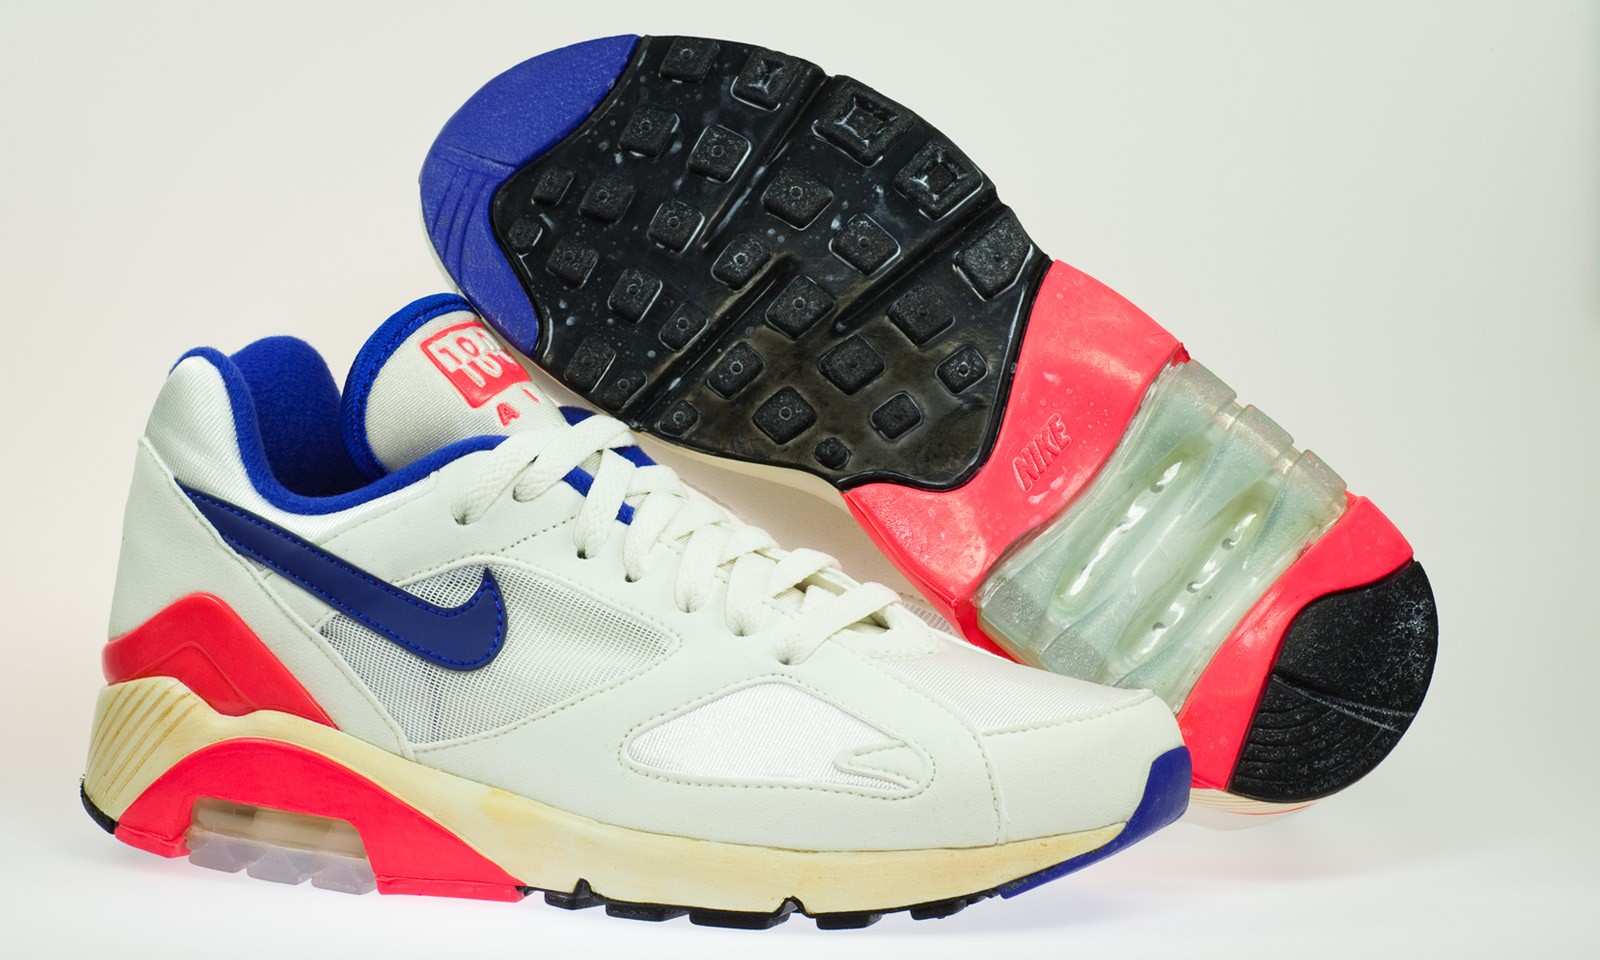 Are Nike Air Max Shoes Good For Overpronating